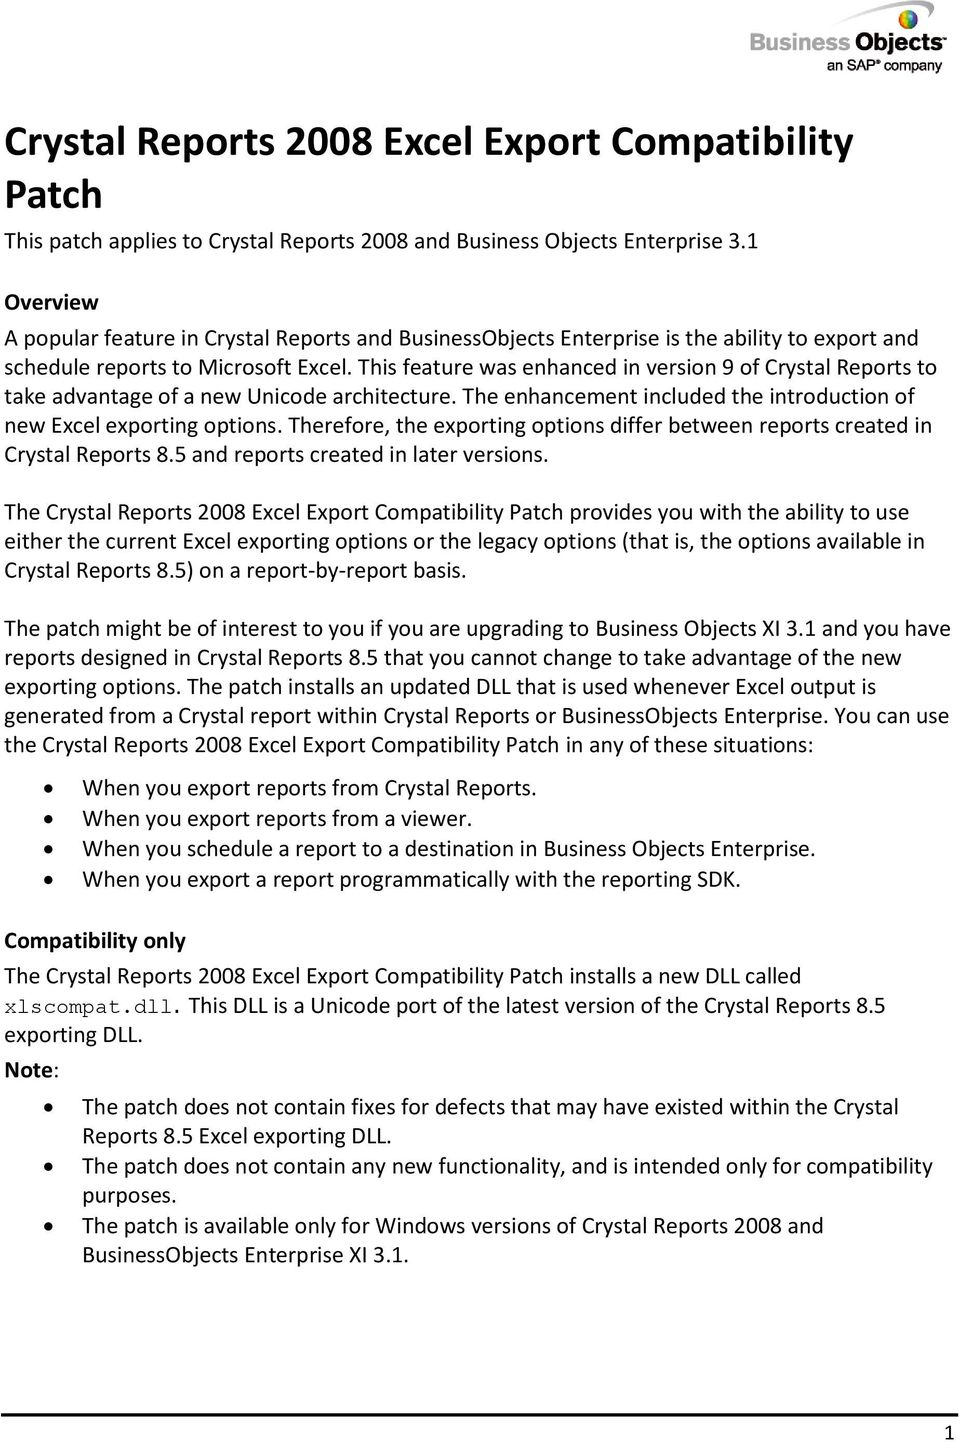 Crystal Reports 2008 Excel Export Compatibility Patch This